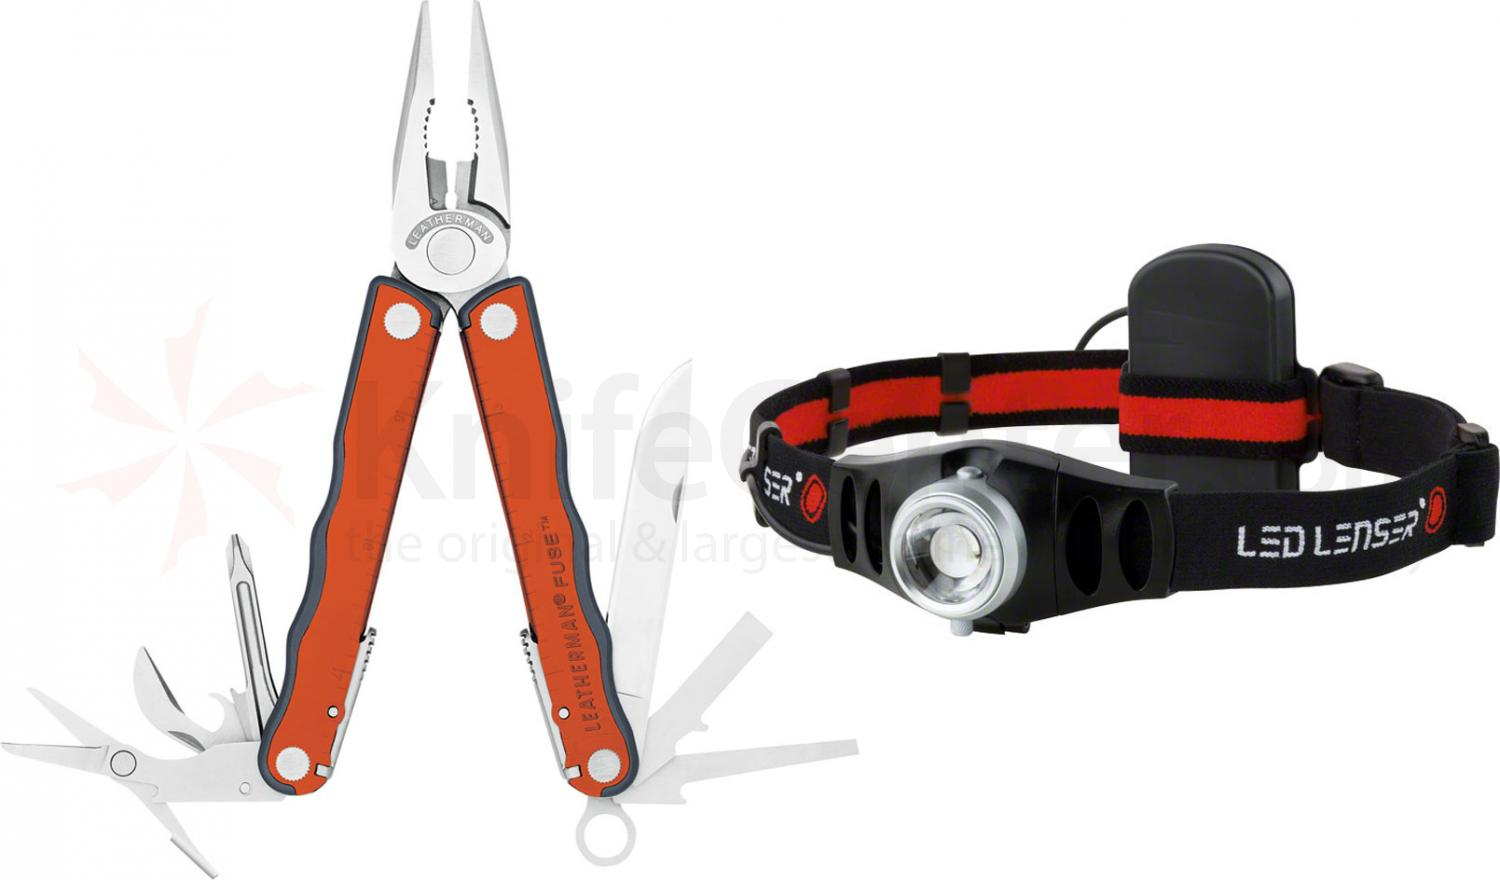 Leatherman Fuse Full-Size Orange Multi-Tool and LED Lenser H5, Nylon Sheath